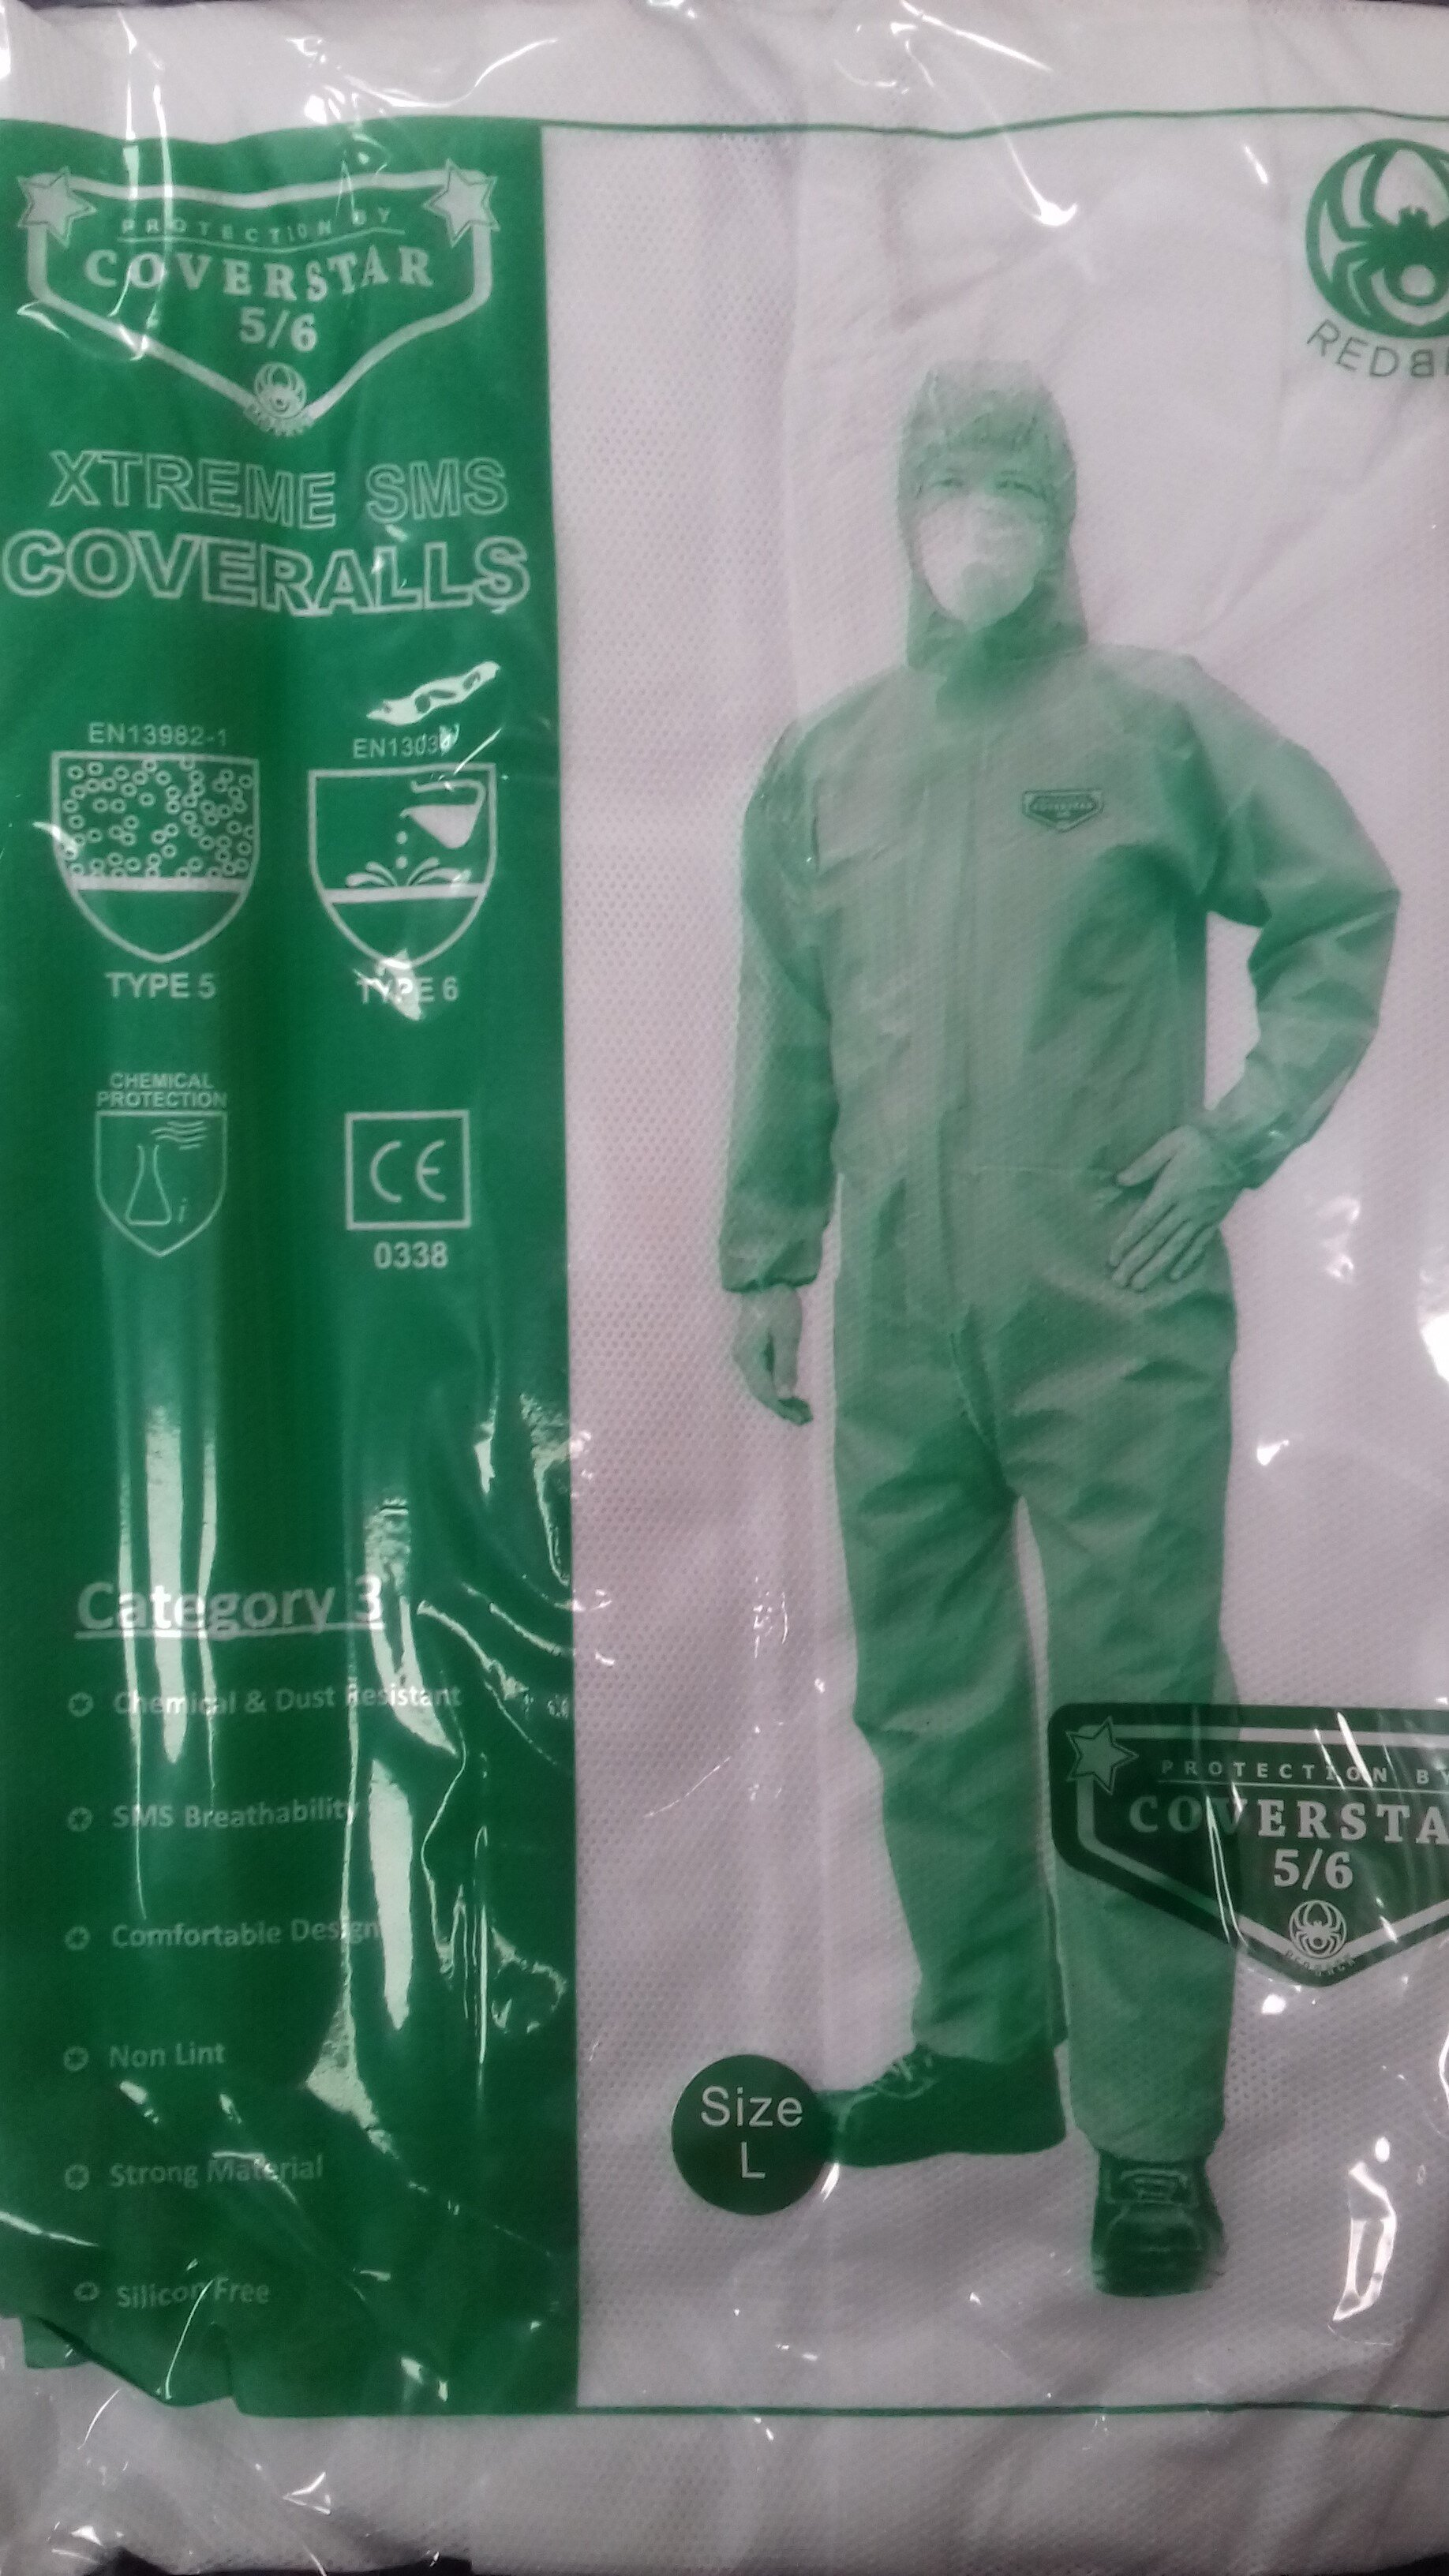 REDBACK Coverstar Xtreme SMS Type 5/6 Coverall